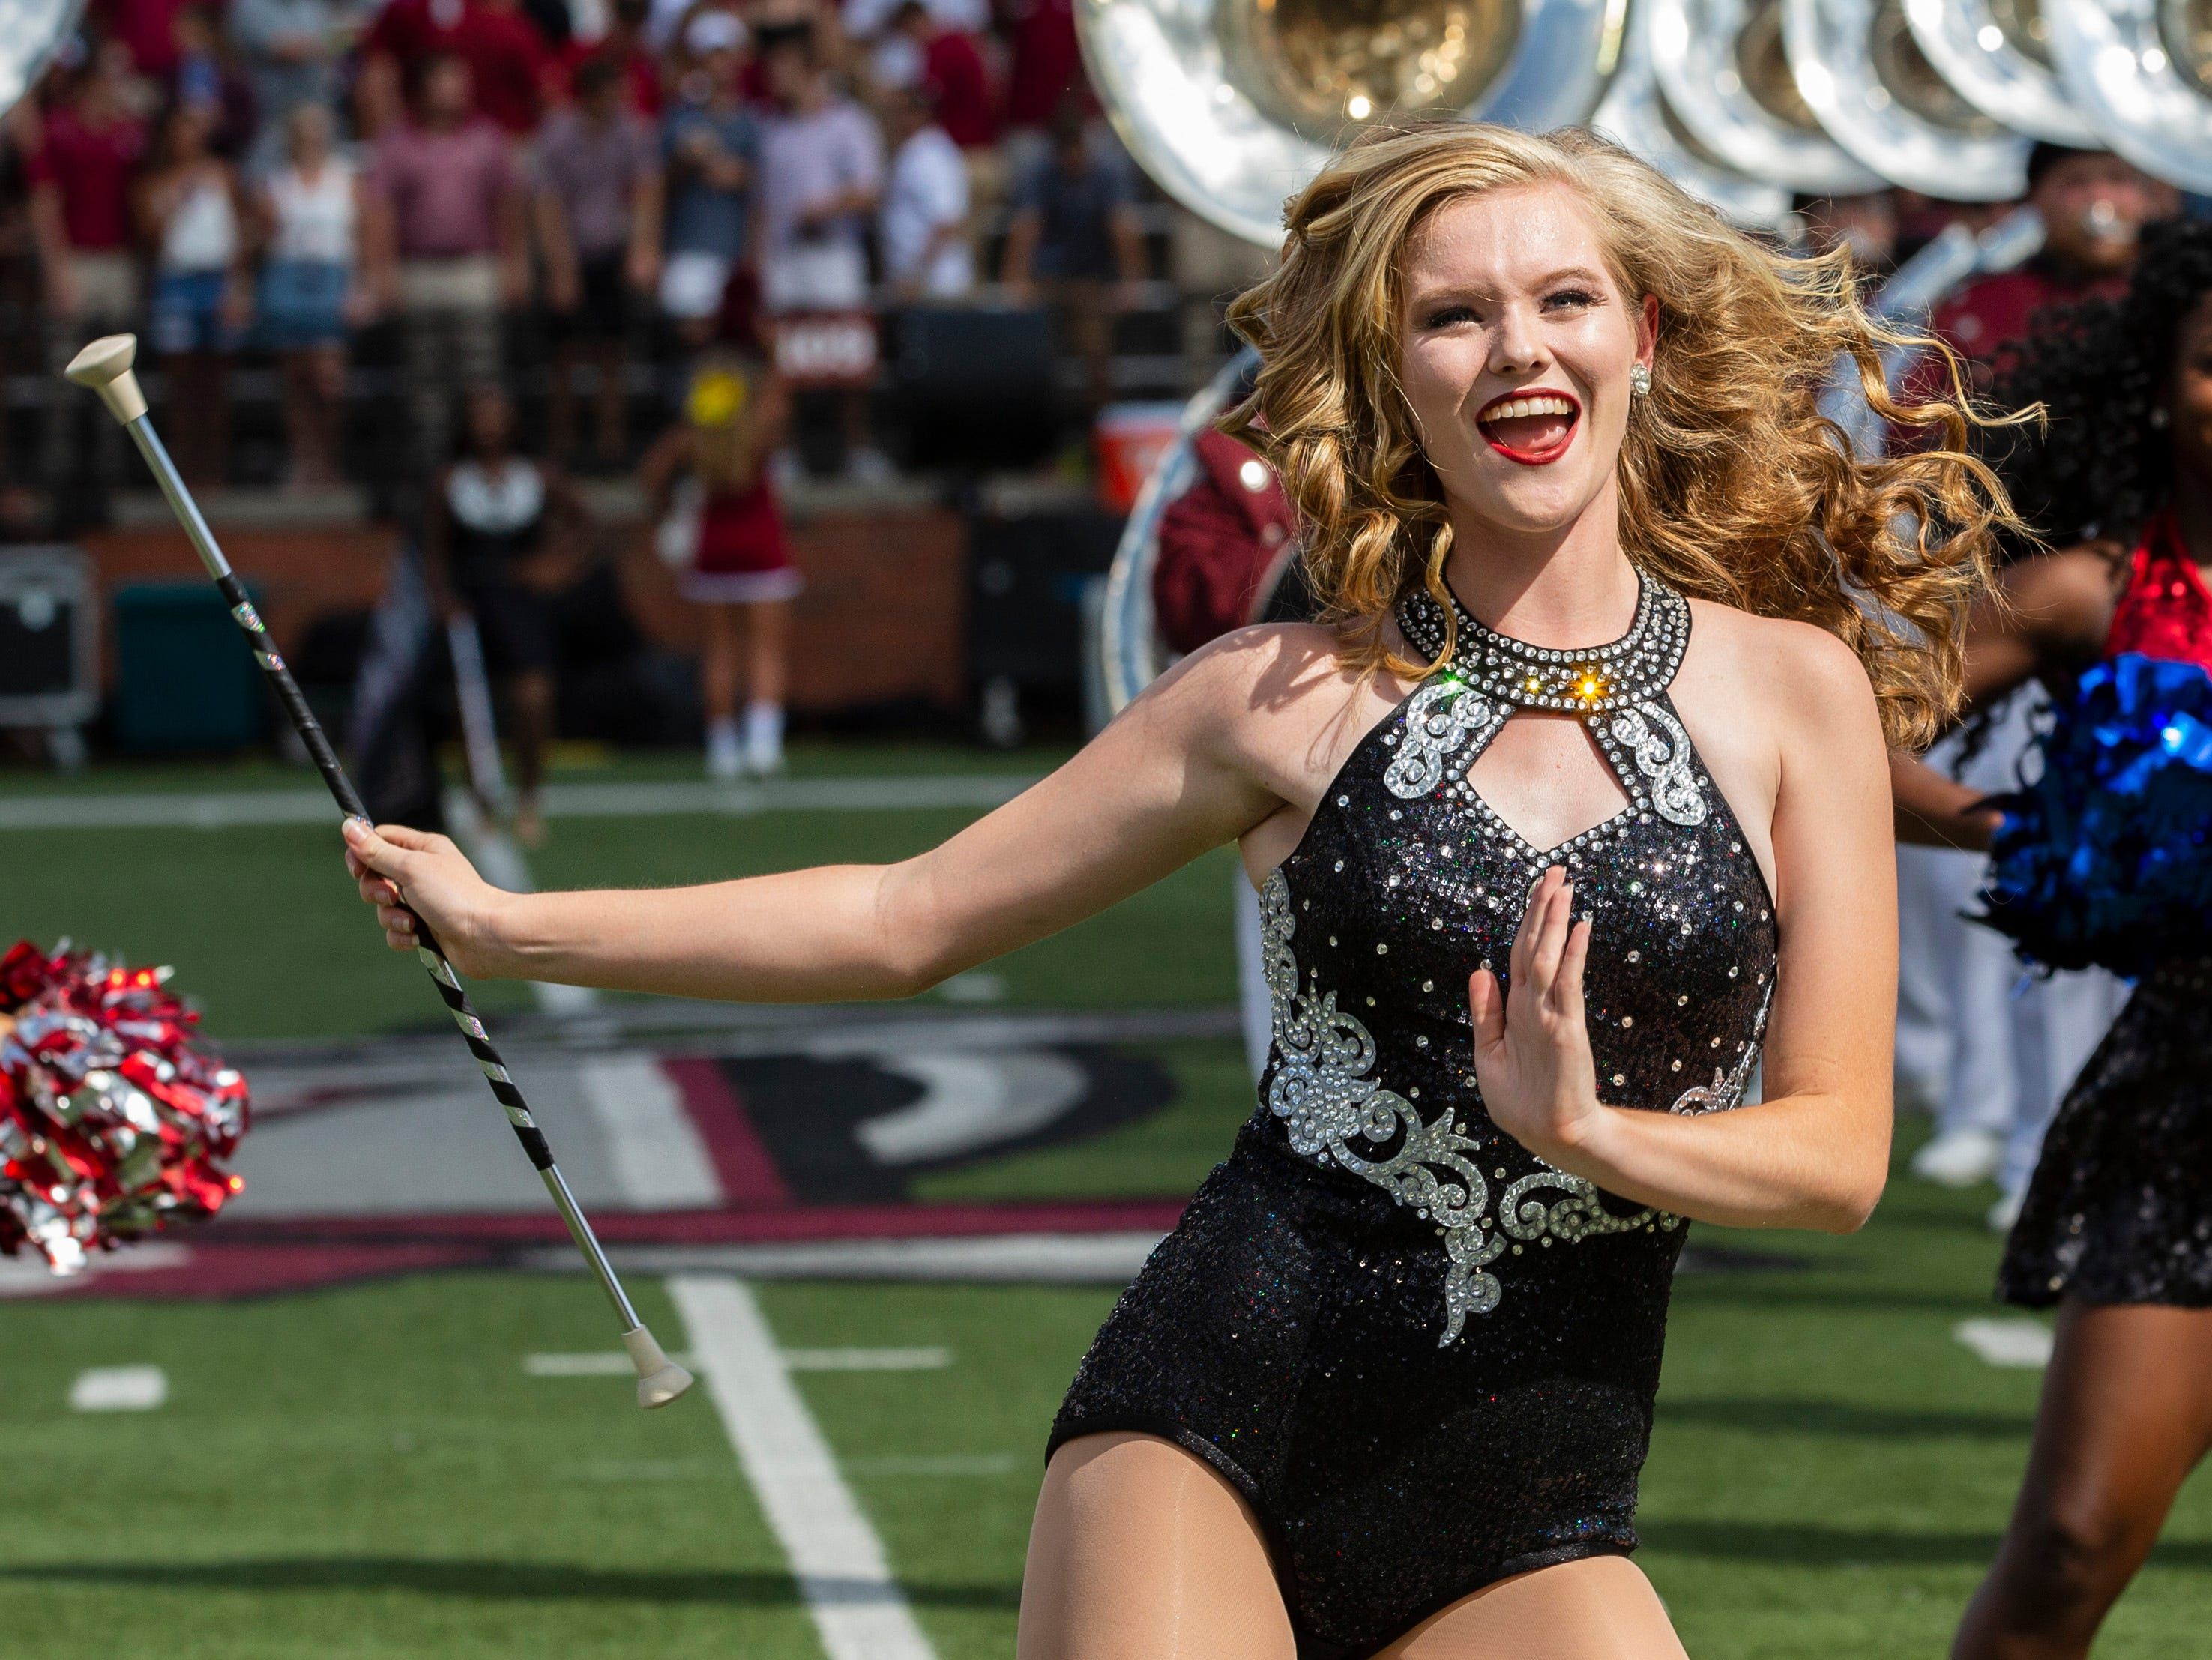 A Troy majorette charms the crowd during pregame.